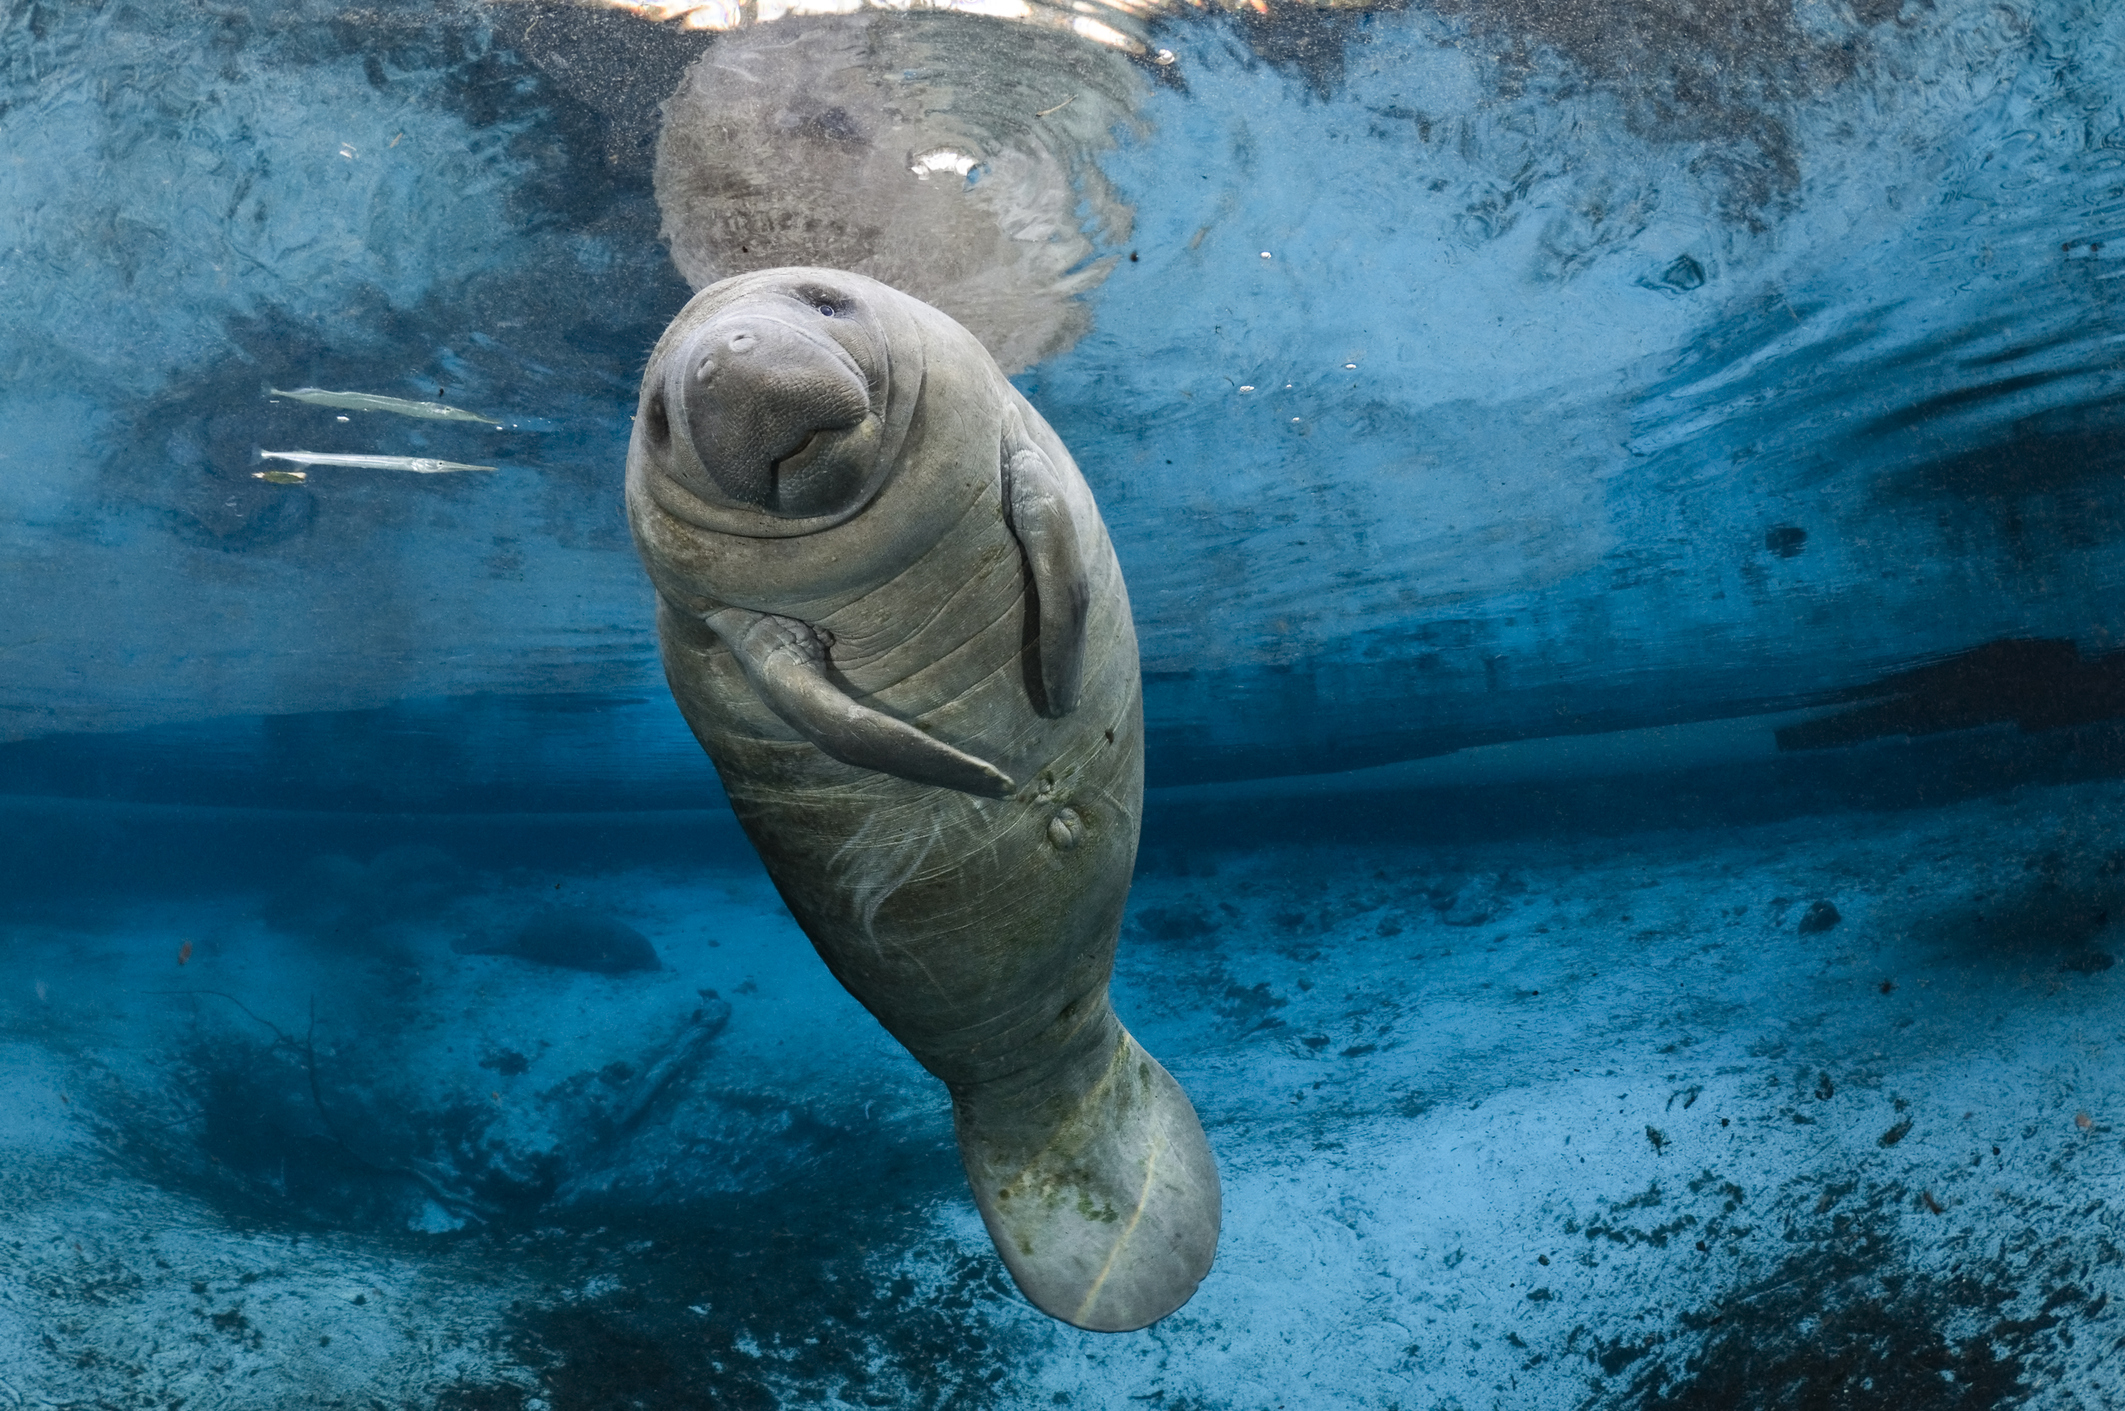 manatee-endangered-species.jpeg